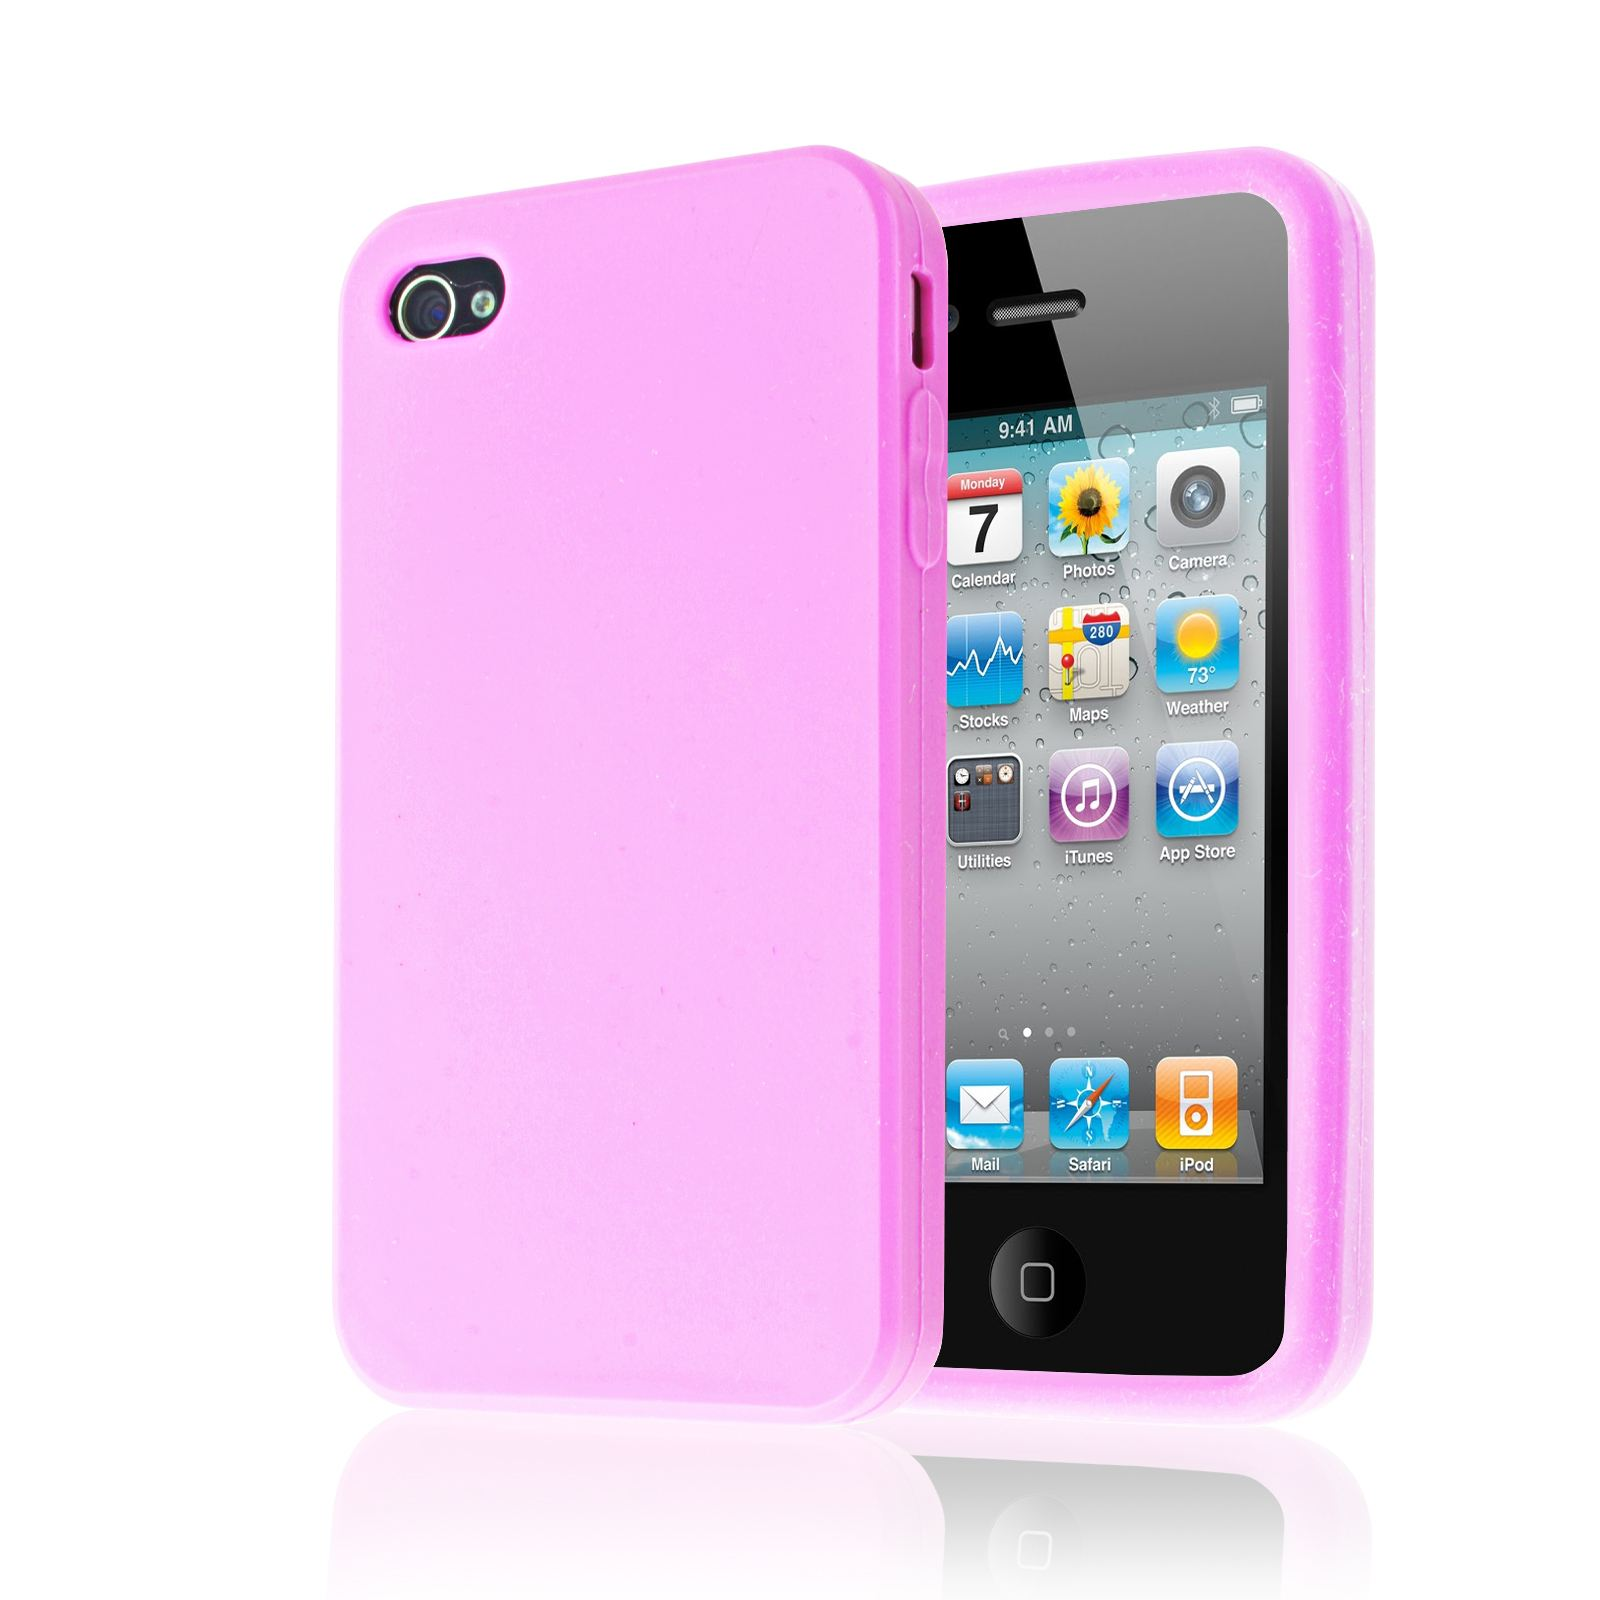 iphone 4s cases ebay high quality plain soft silicone impact back cover 14425